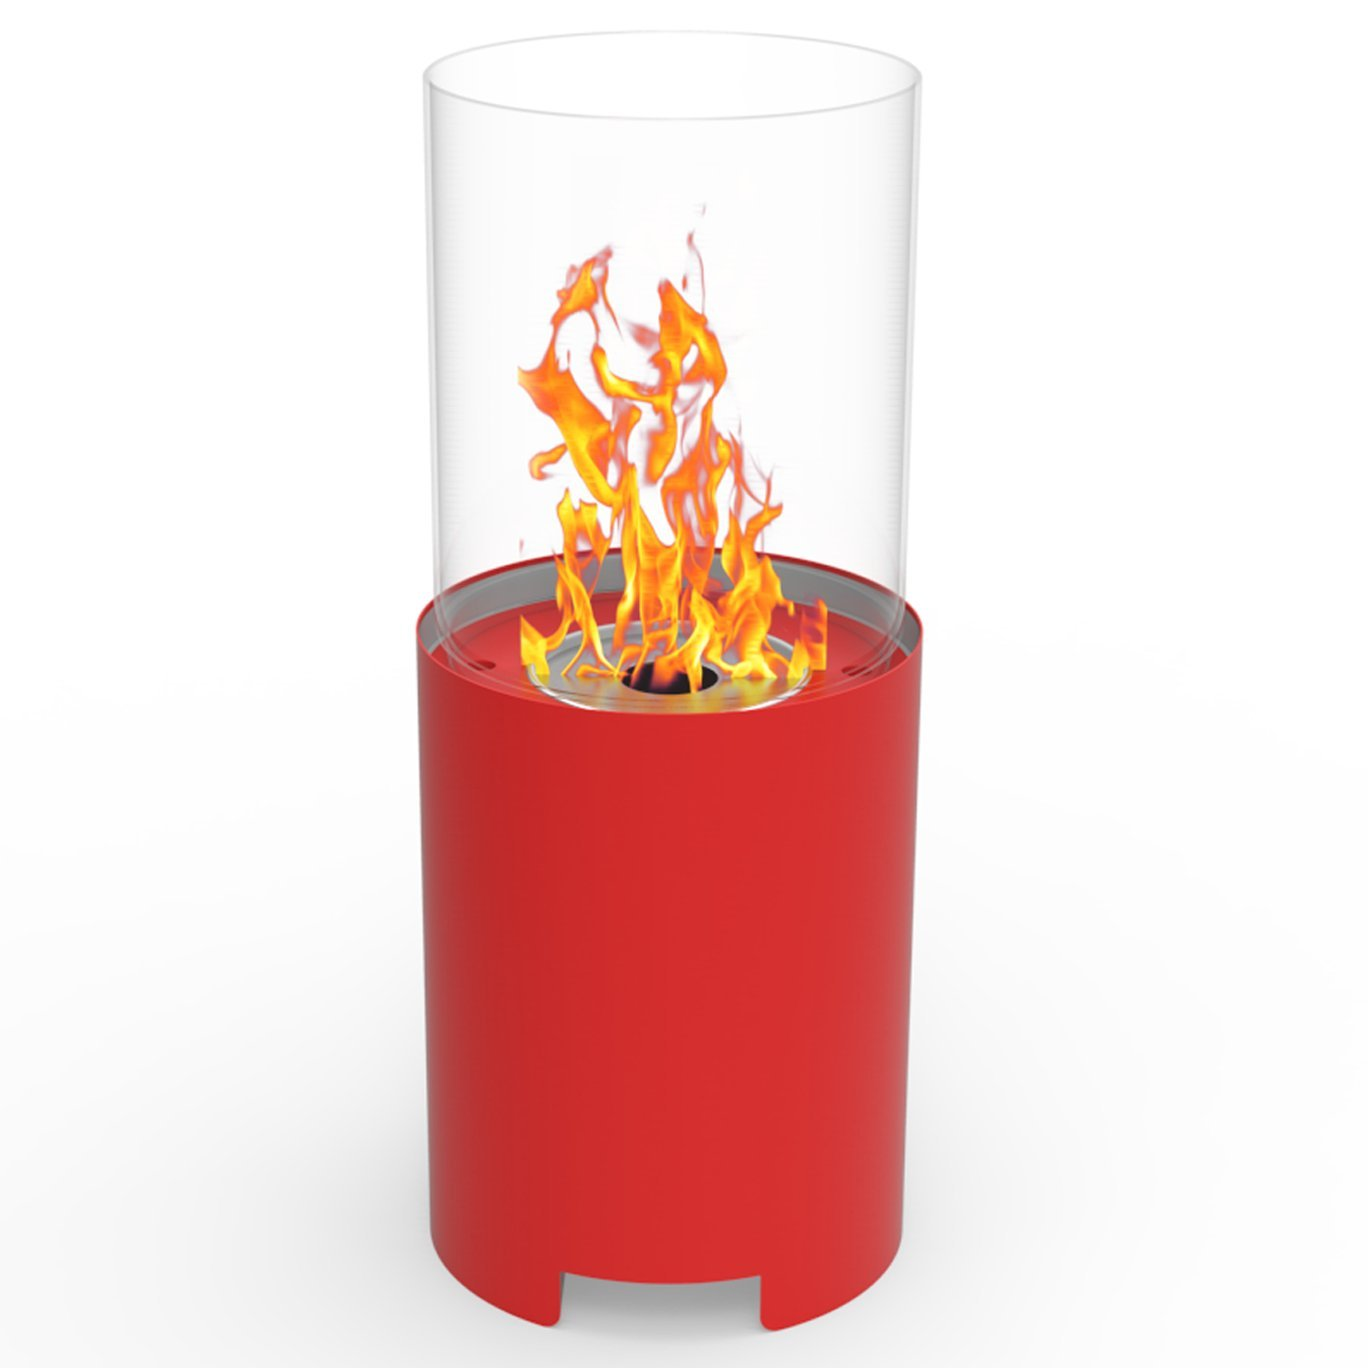 Regal Flame Capelli Ventless Indoor Outdoor Fire Pit Tabletop Portable Fire Bowl Pot Bio Ethanol Fireplace in Red - Realistic Clean Burning like Gel Fireplaces, or Propane Firepits